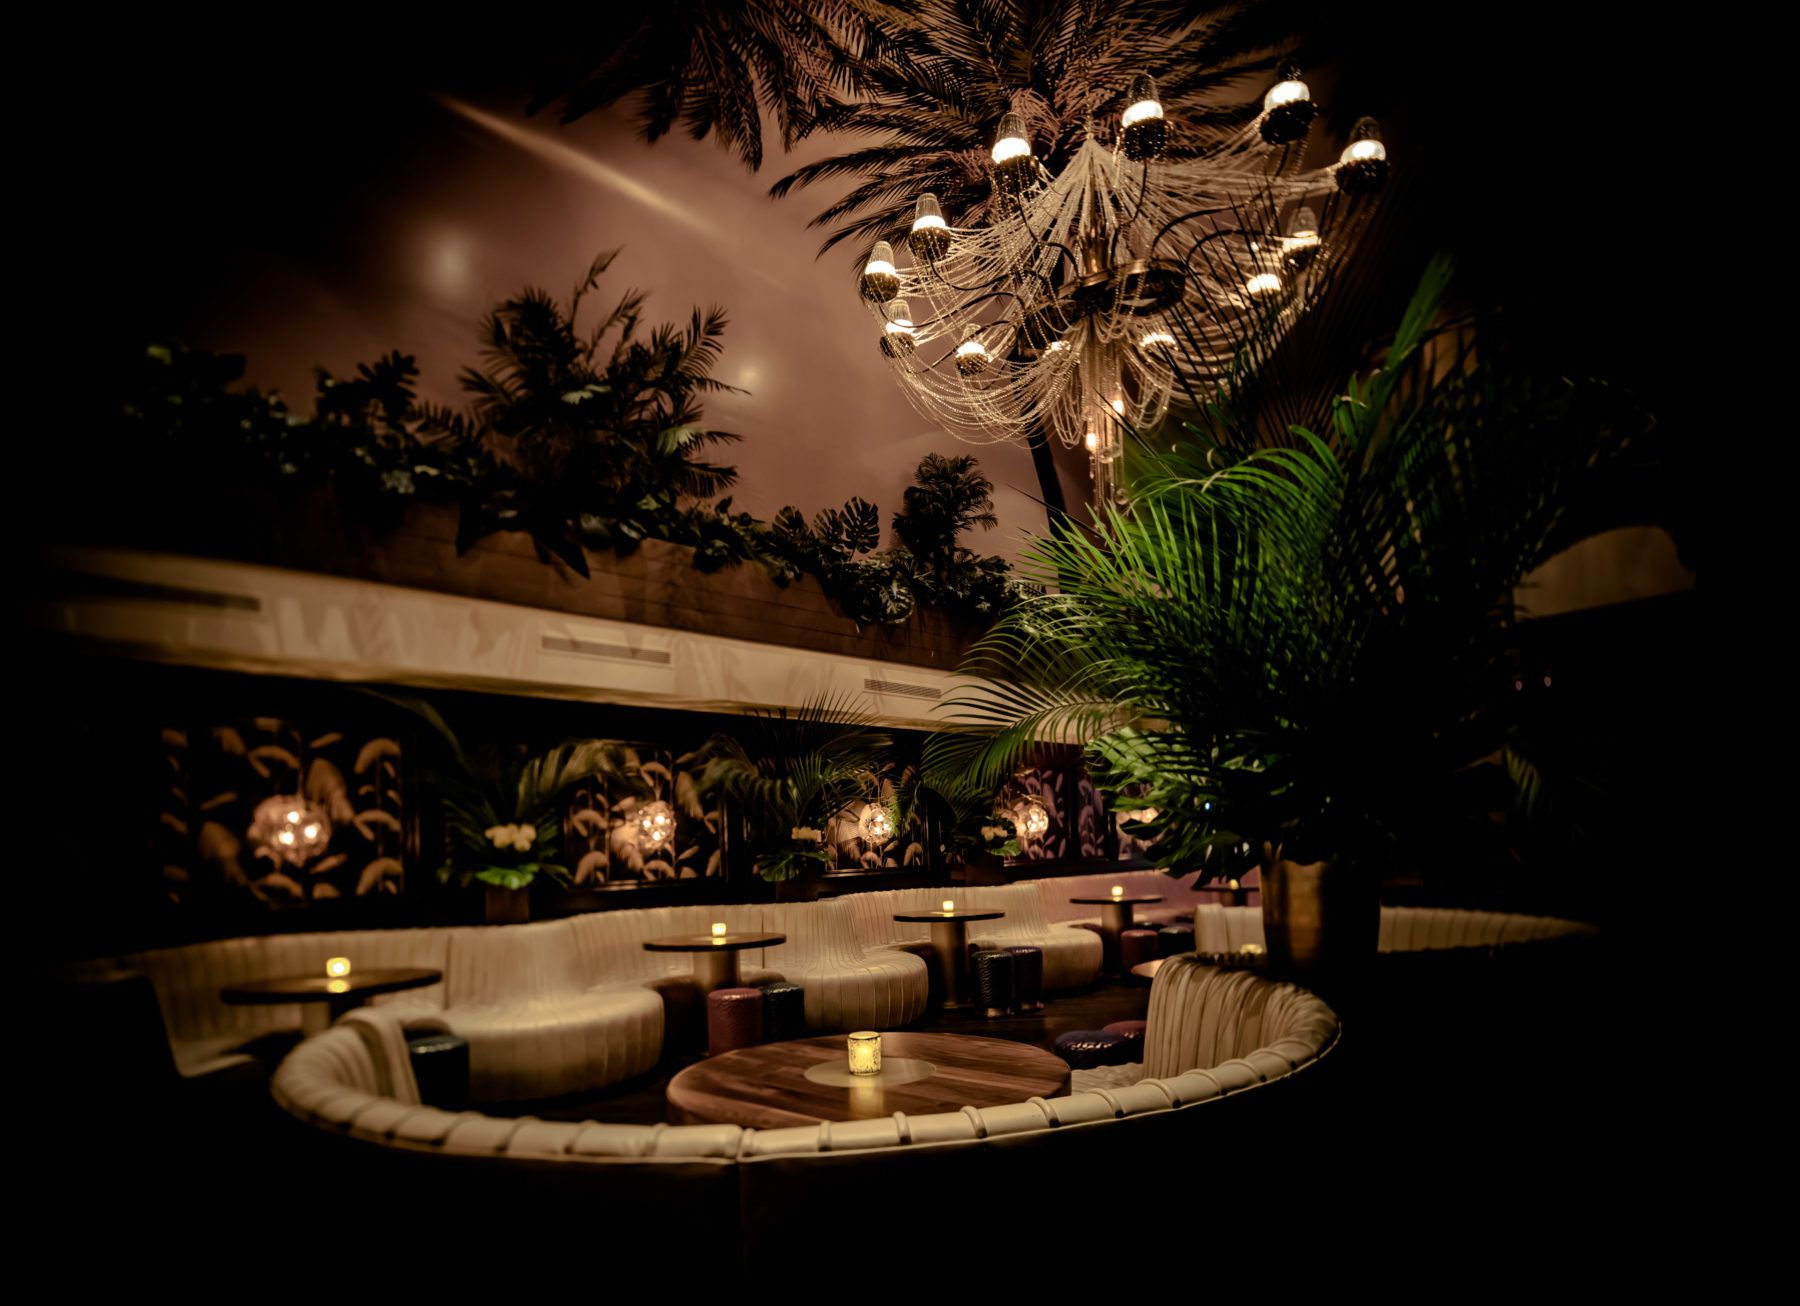 Interior of Number 8 nightclub, with banquets, floral wall paper and palm trees